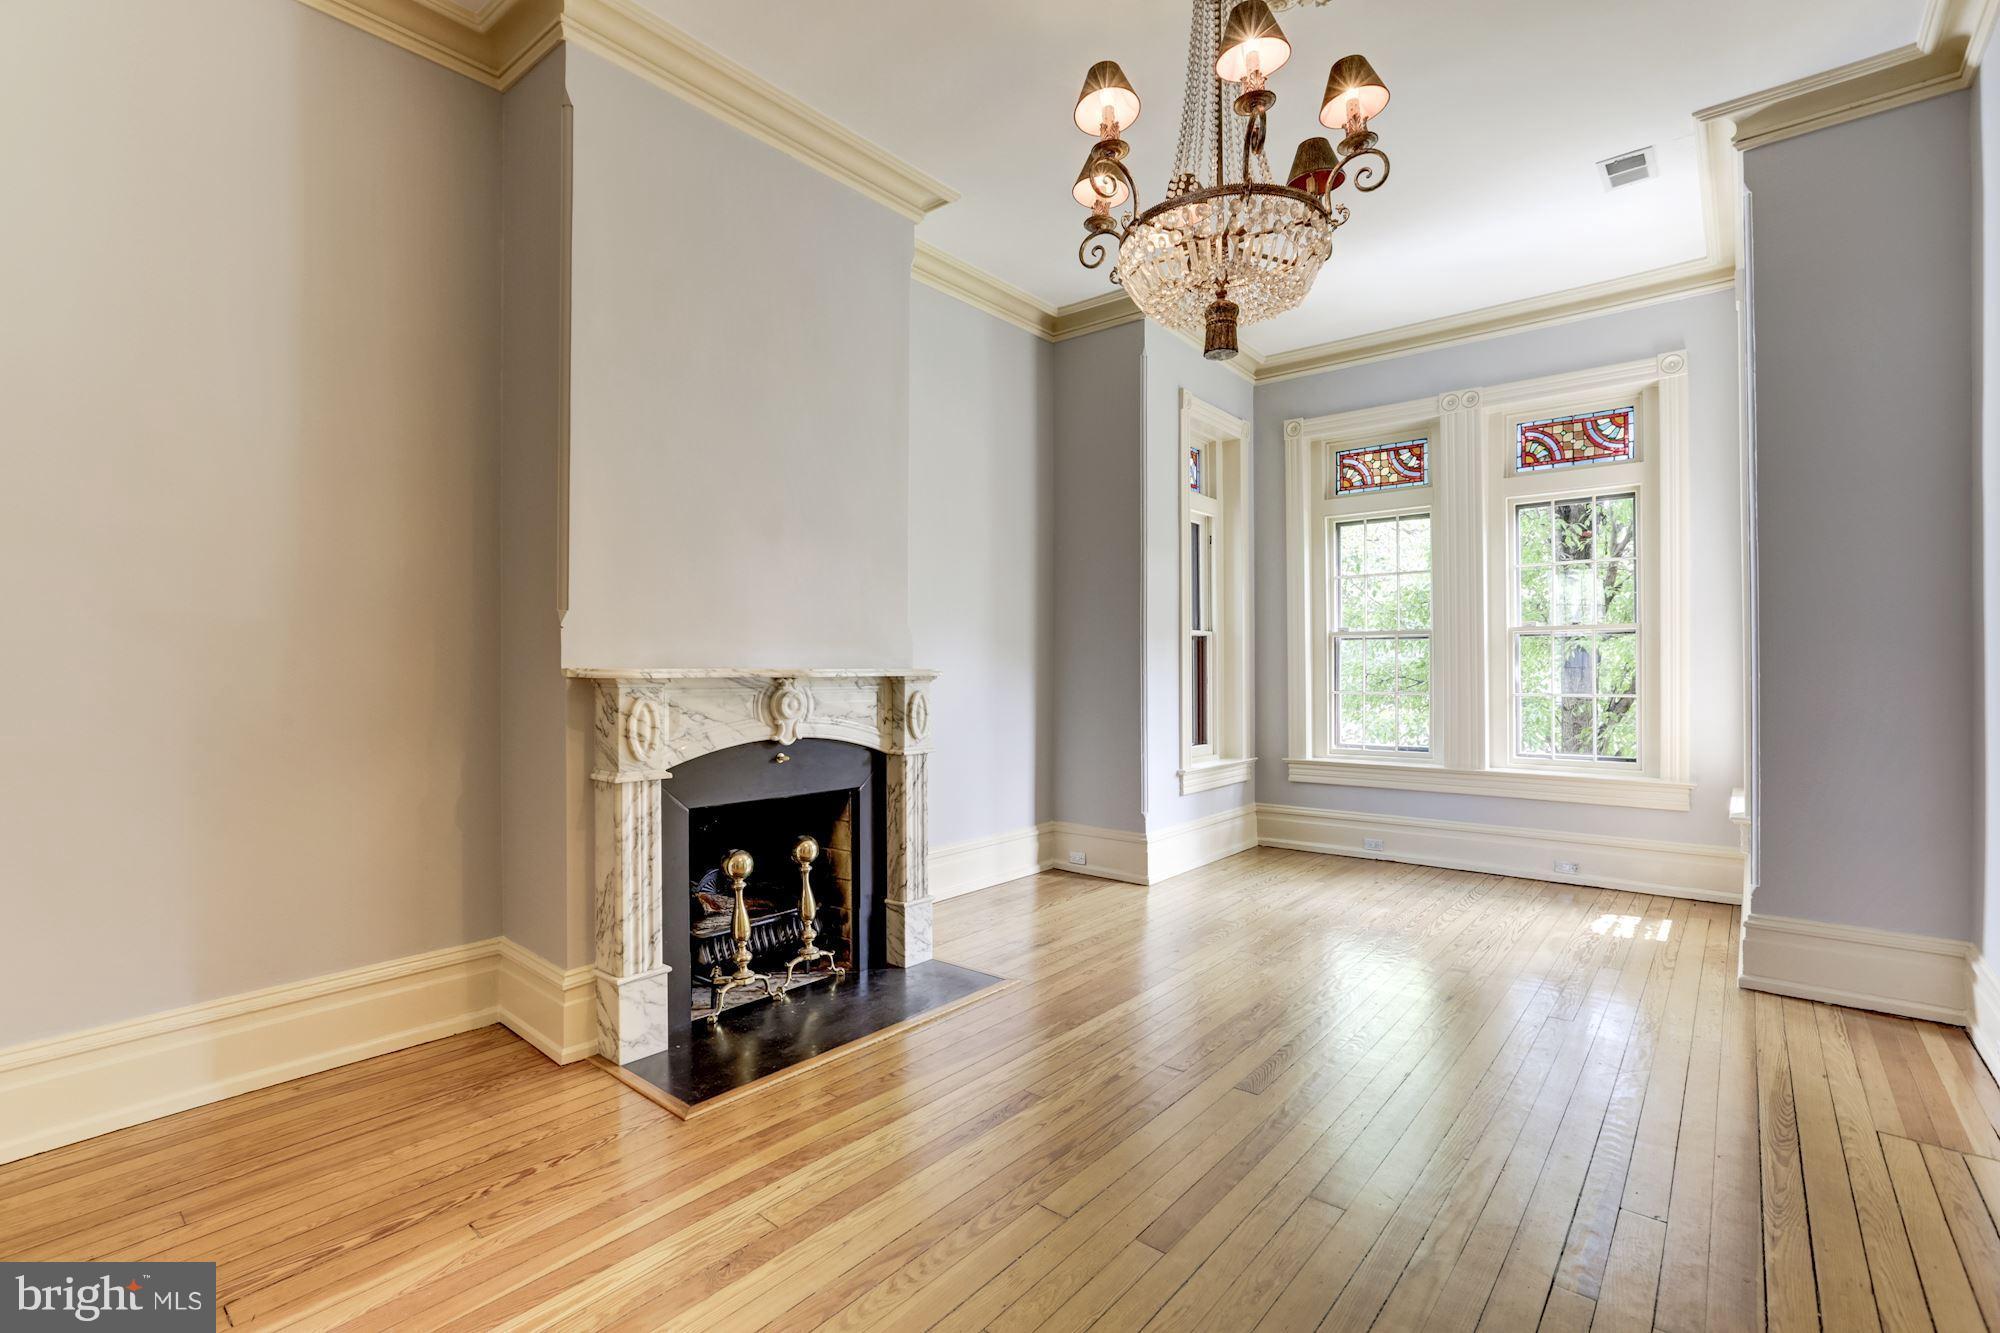 NEW PRICE! This Grand Capitol Hill 1878 Victorian boasts 4200+ sq ft! Turn this traditional gem into